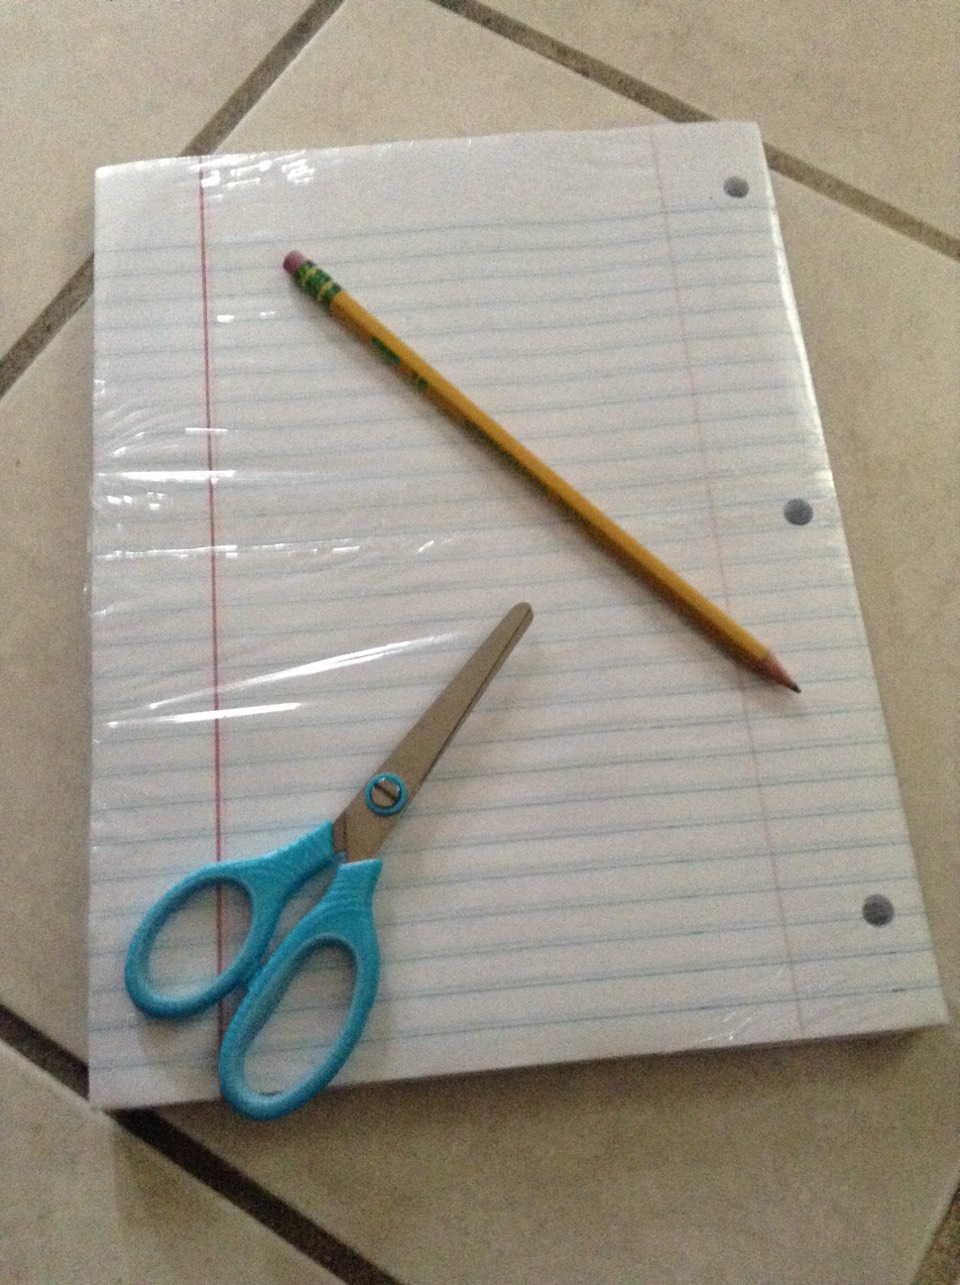 Items you'll need  1.paper 2.scissors  3.any writing tool